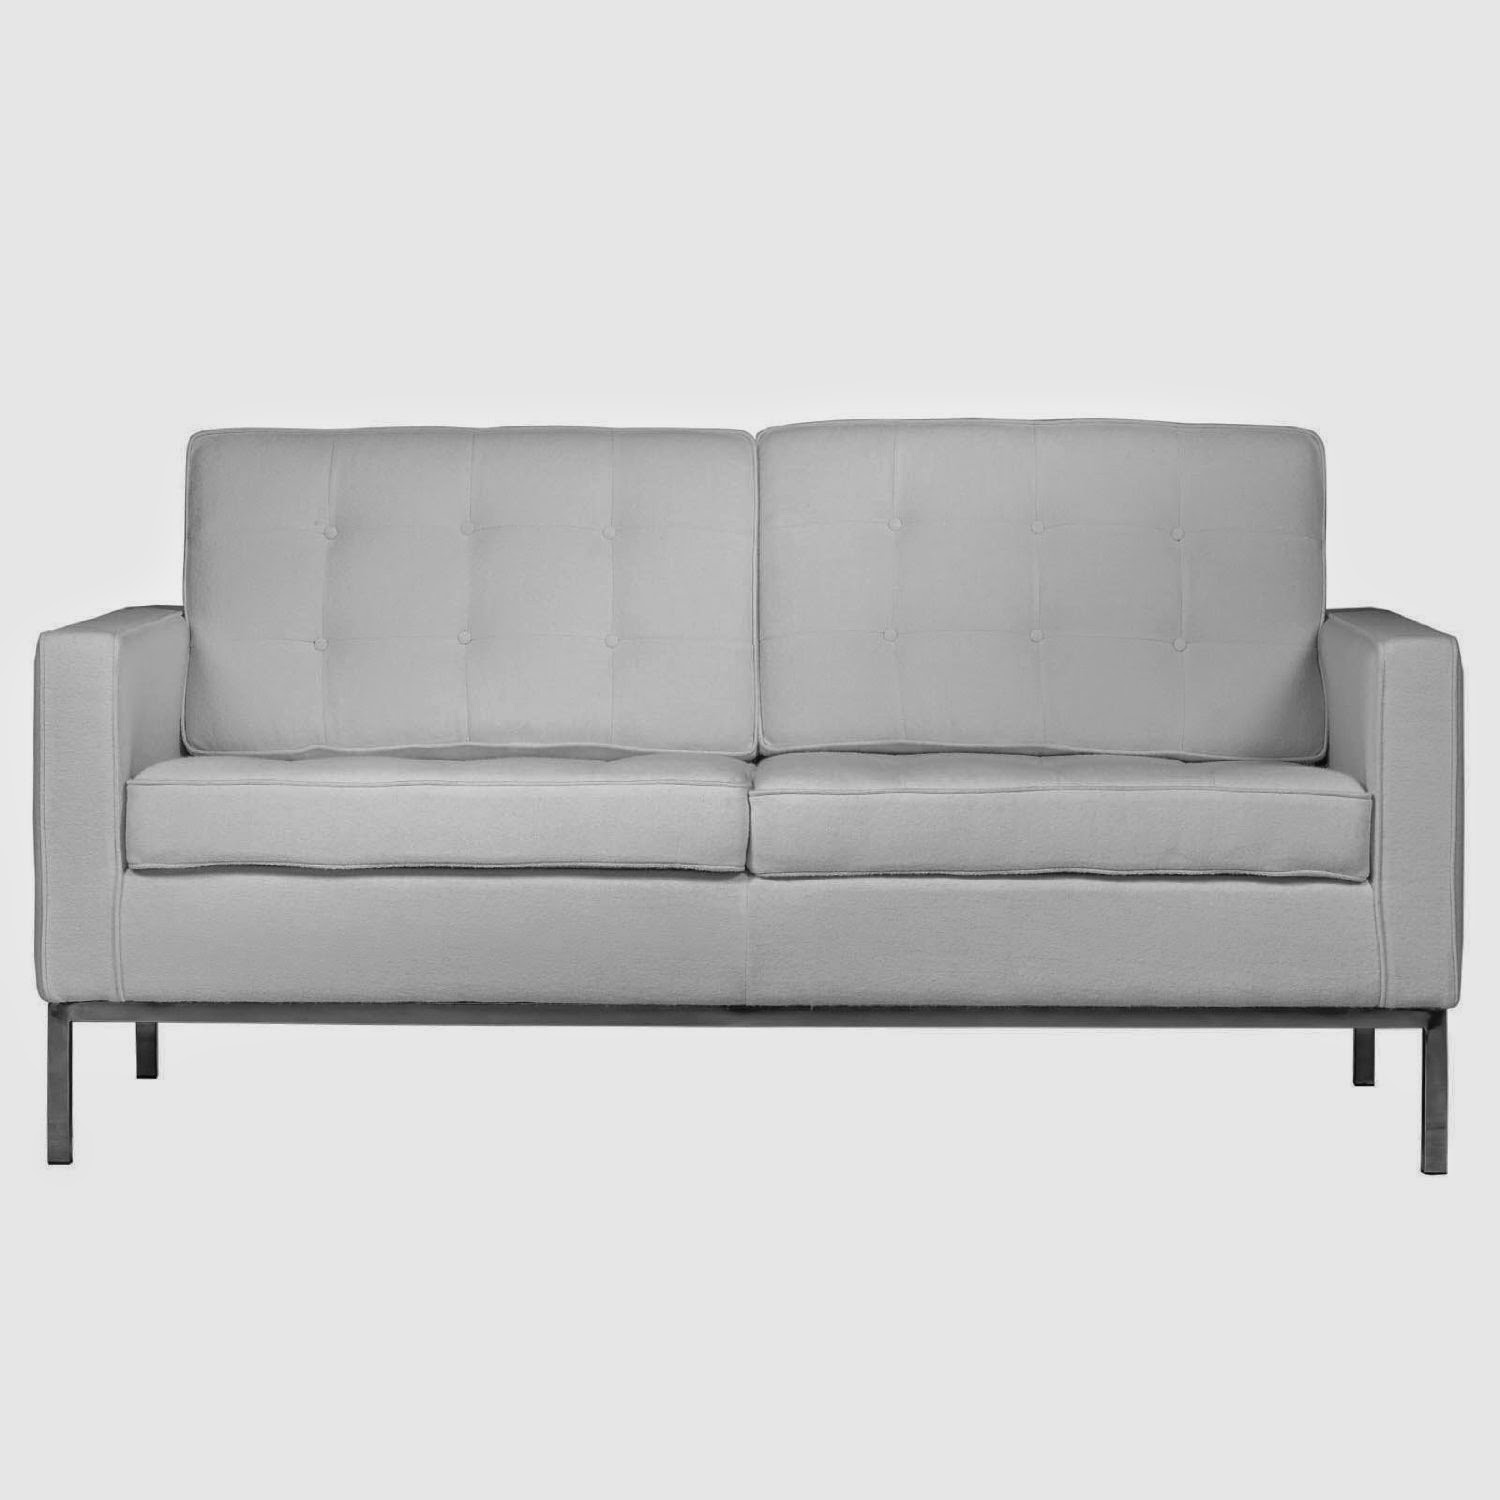 Sleeper couch small sleeper couch Small modern sofa